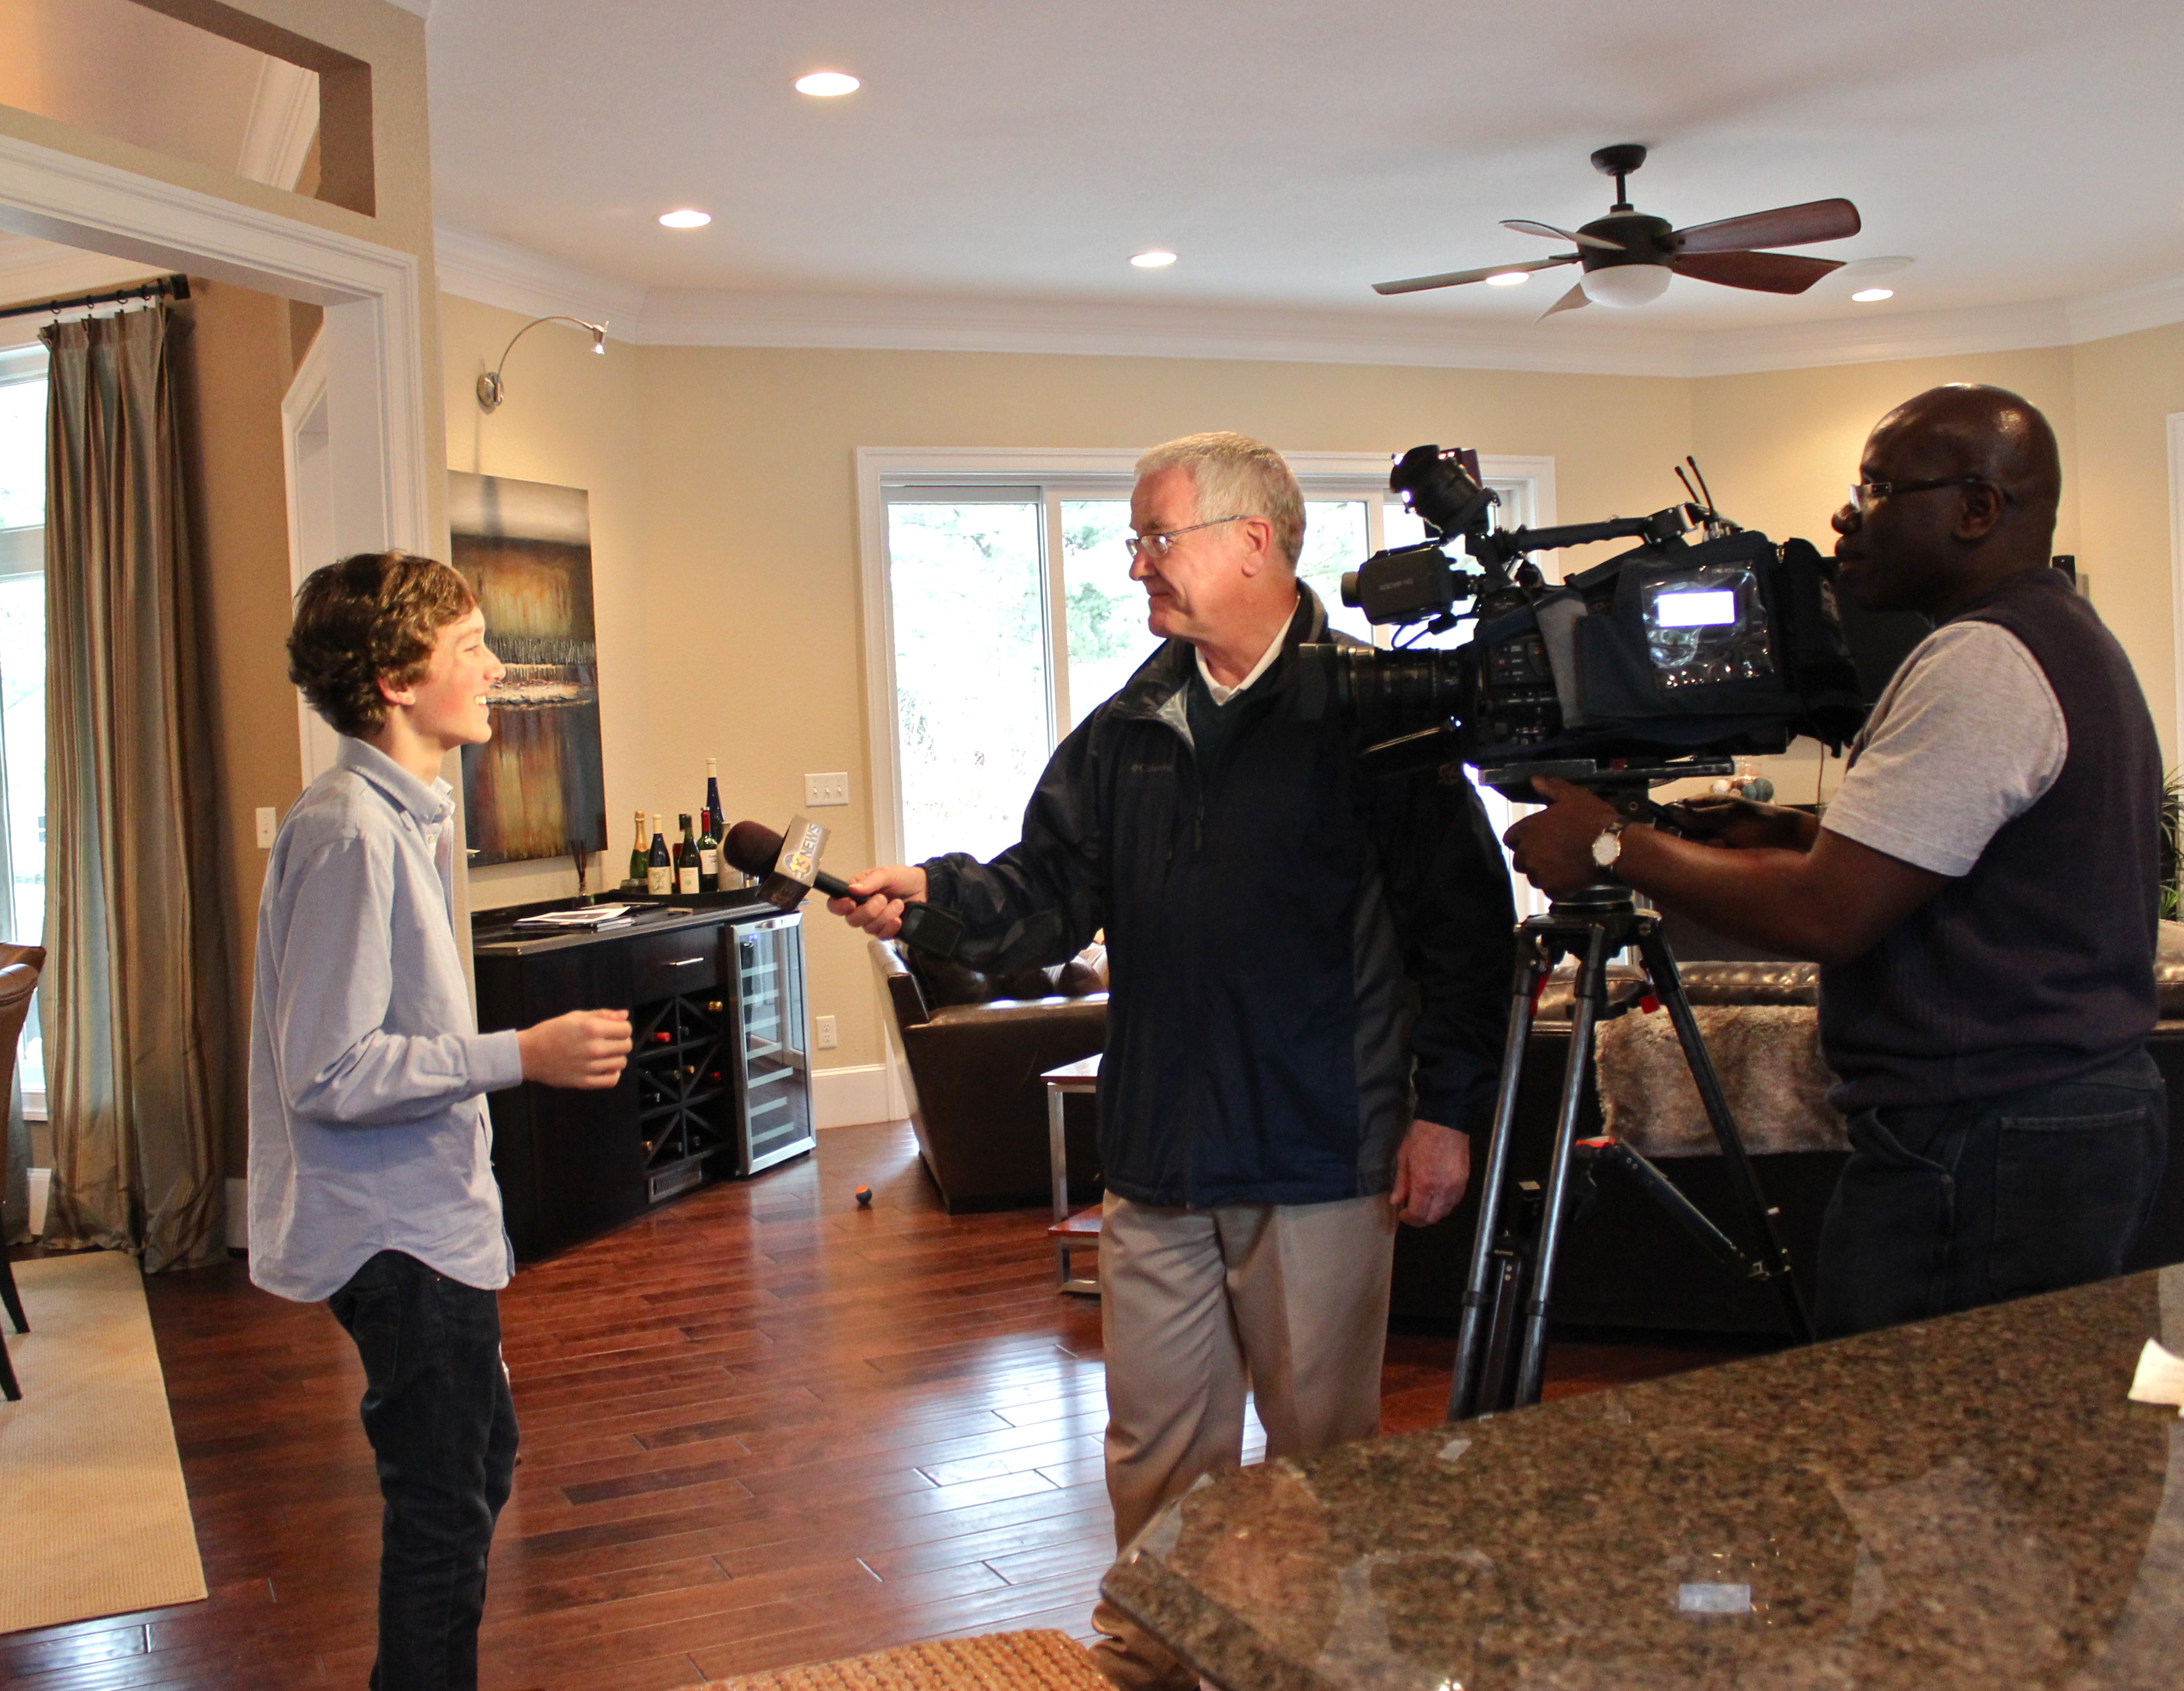 Thanks for the interview from Channel 13 news!